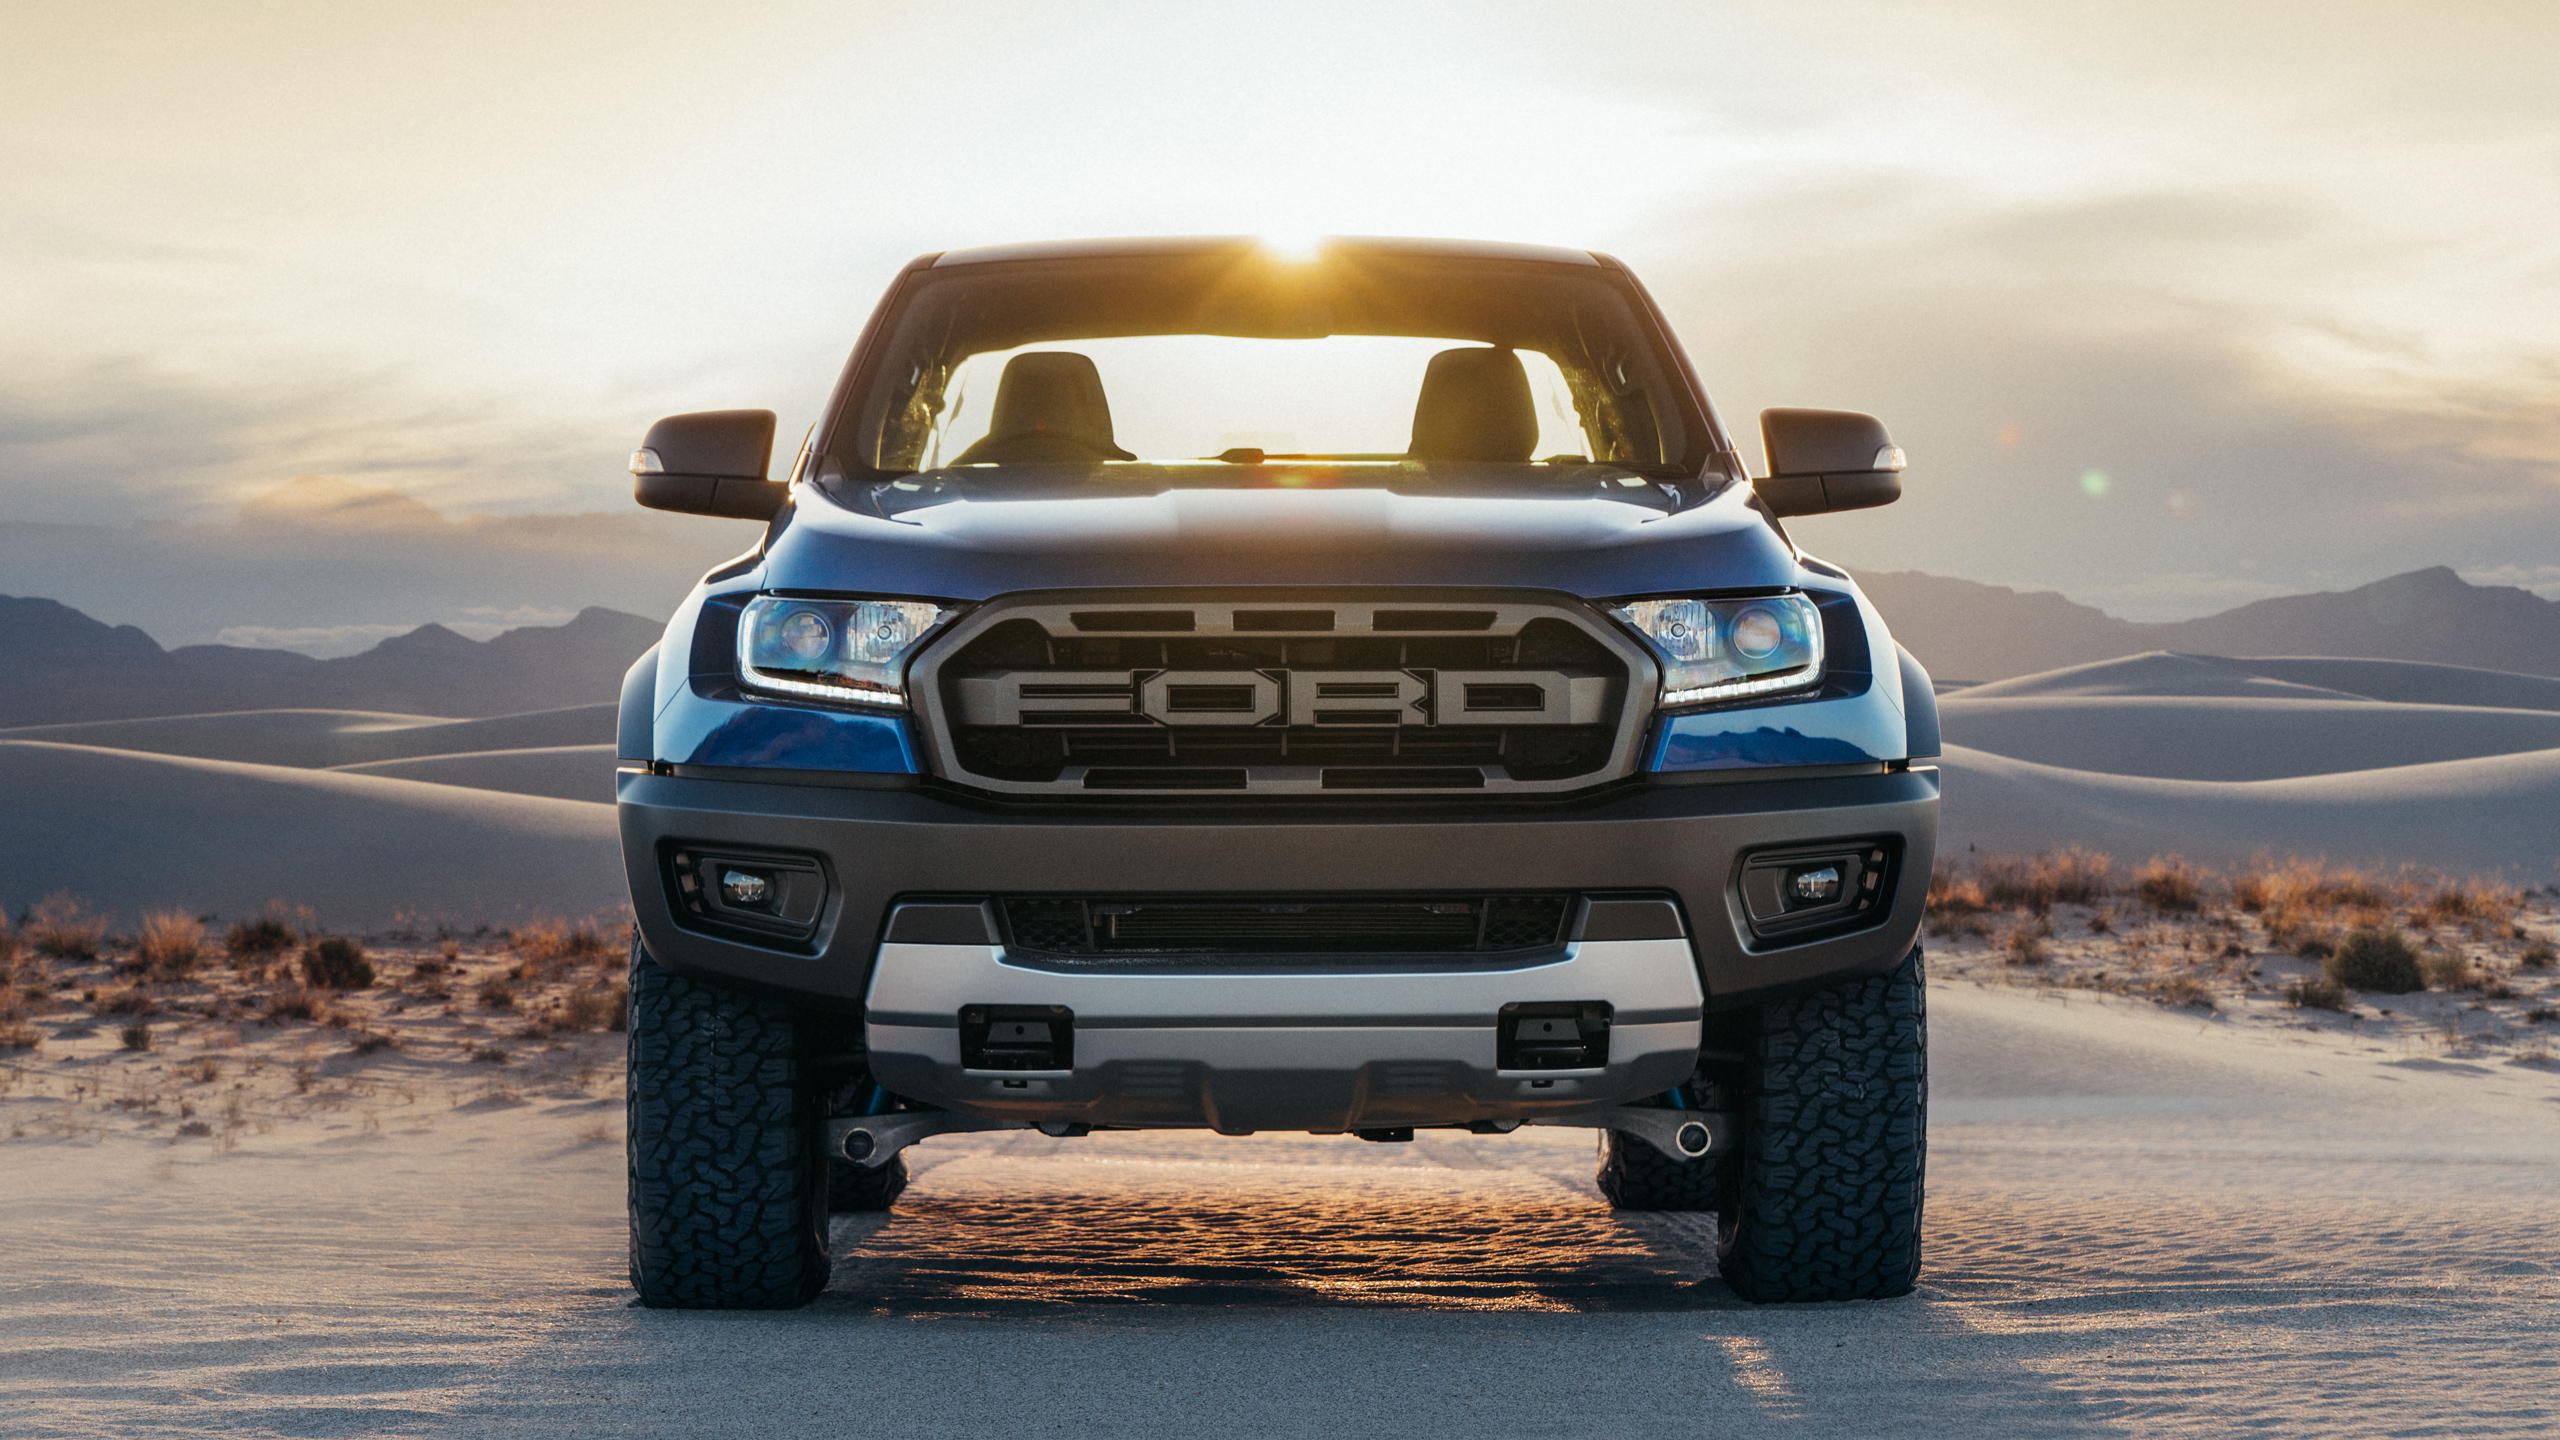 2560x1440 - Ford Ranger Wallpapers 2